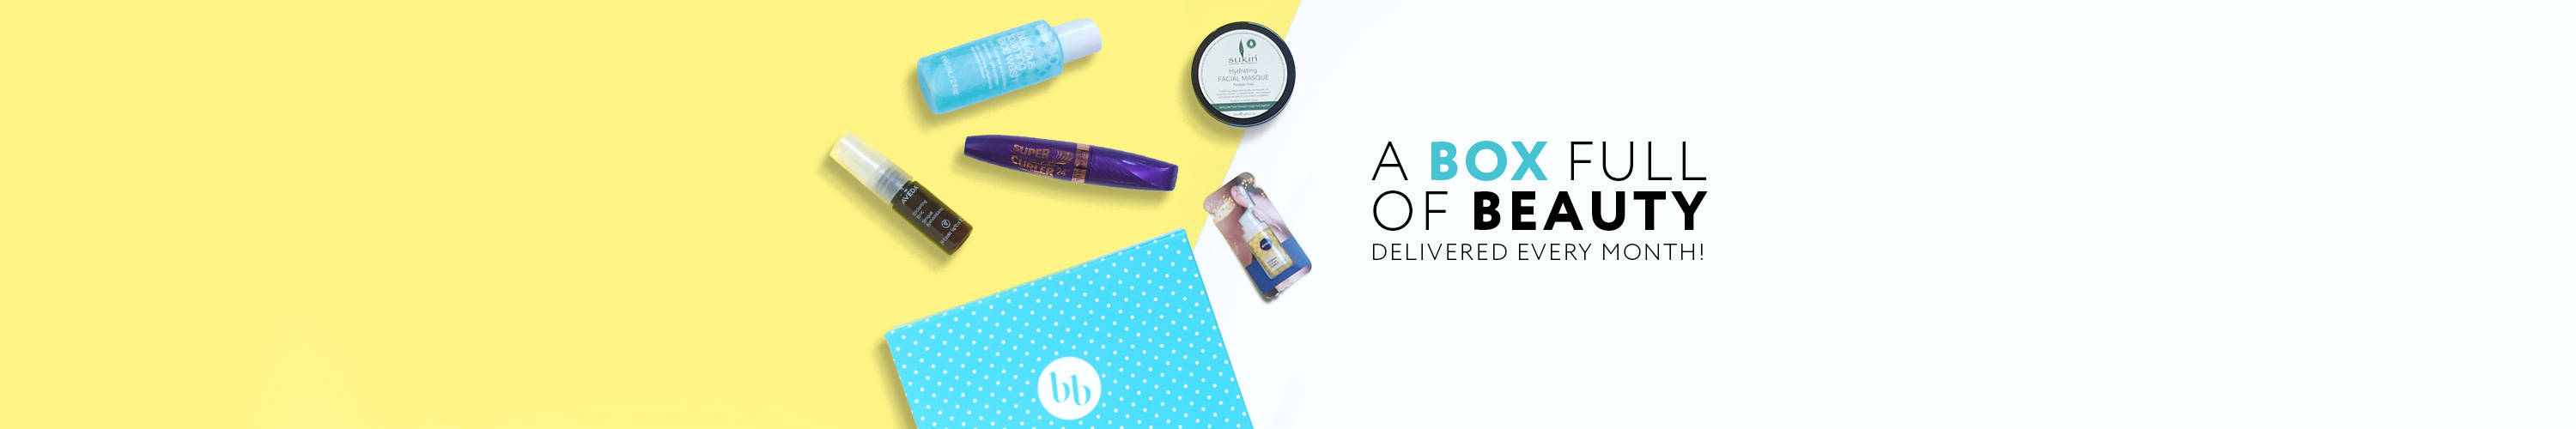 Join this beauty box